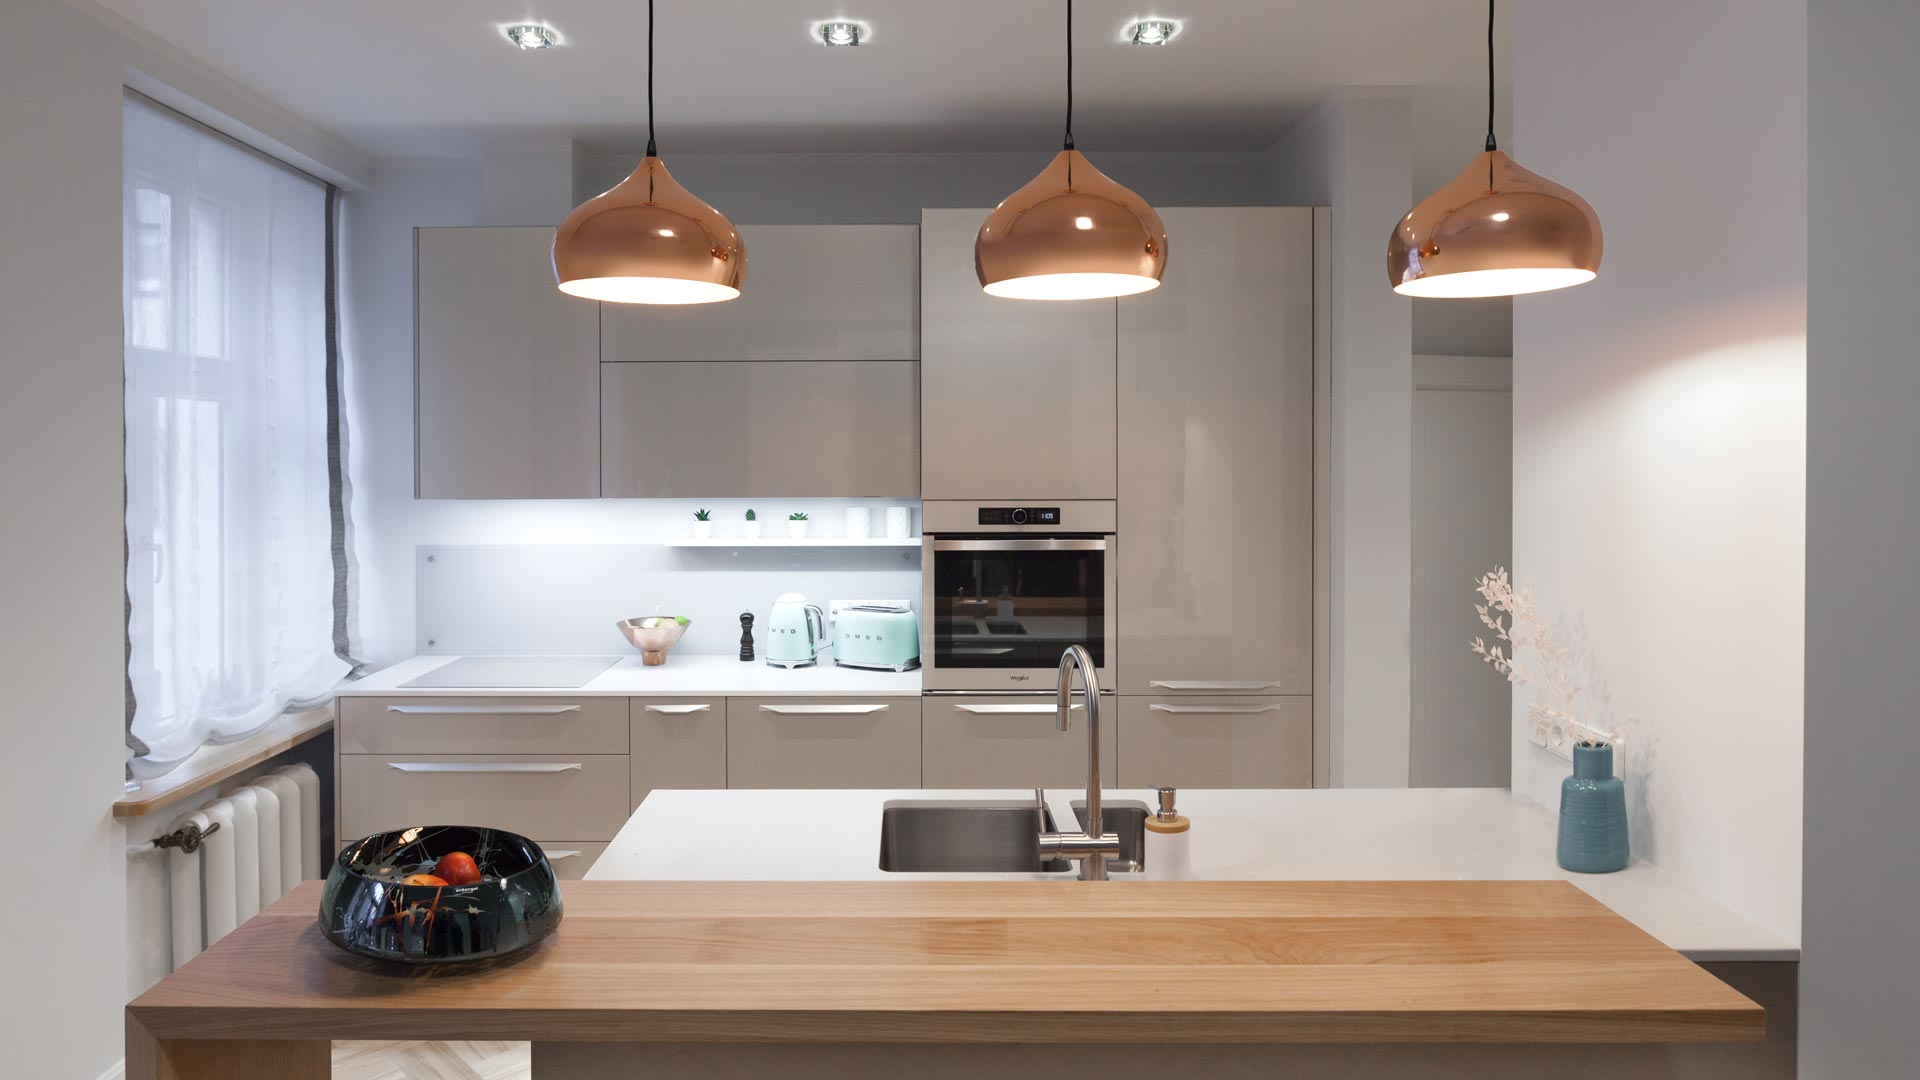 On your way towards a new kitchen with RIPO designer